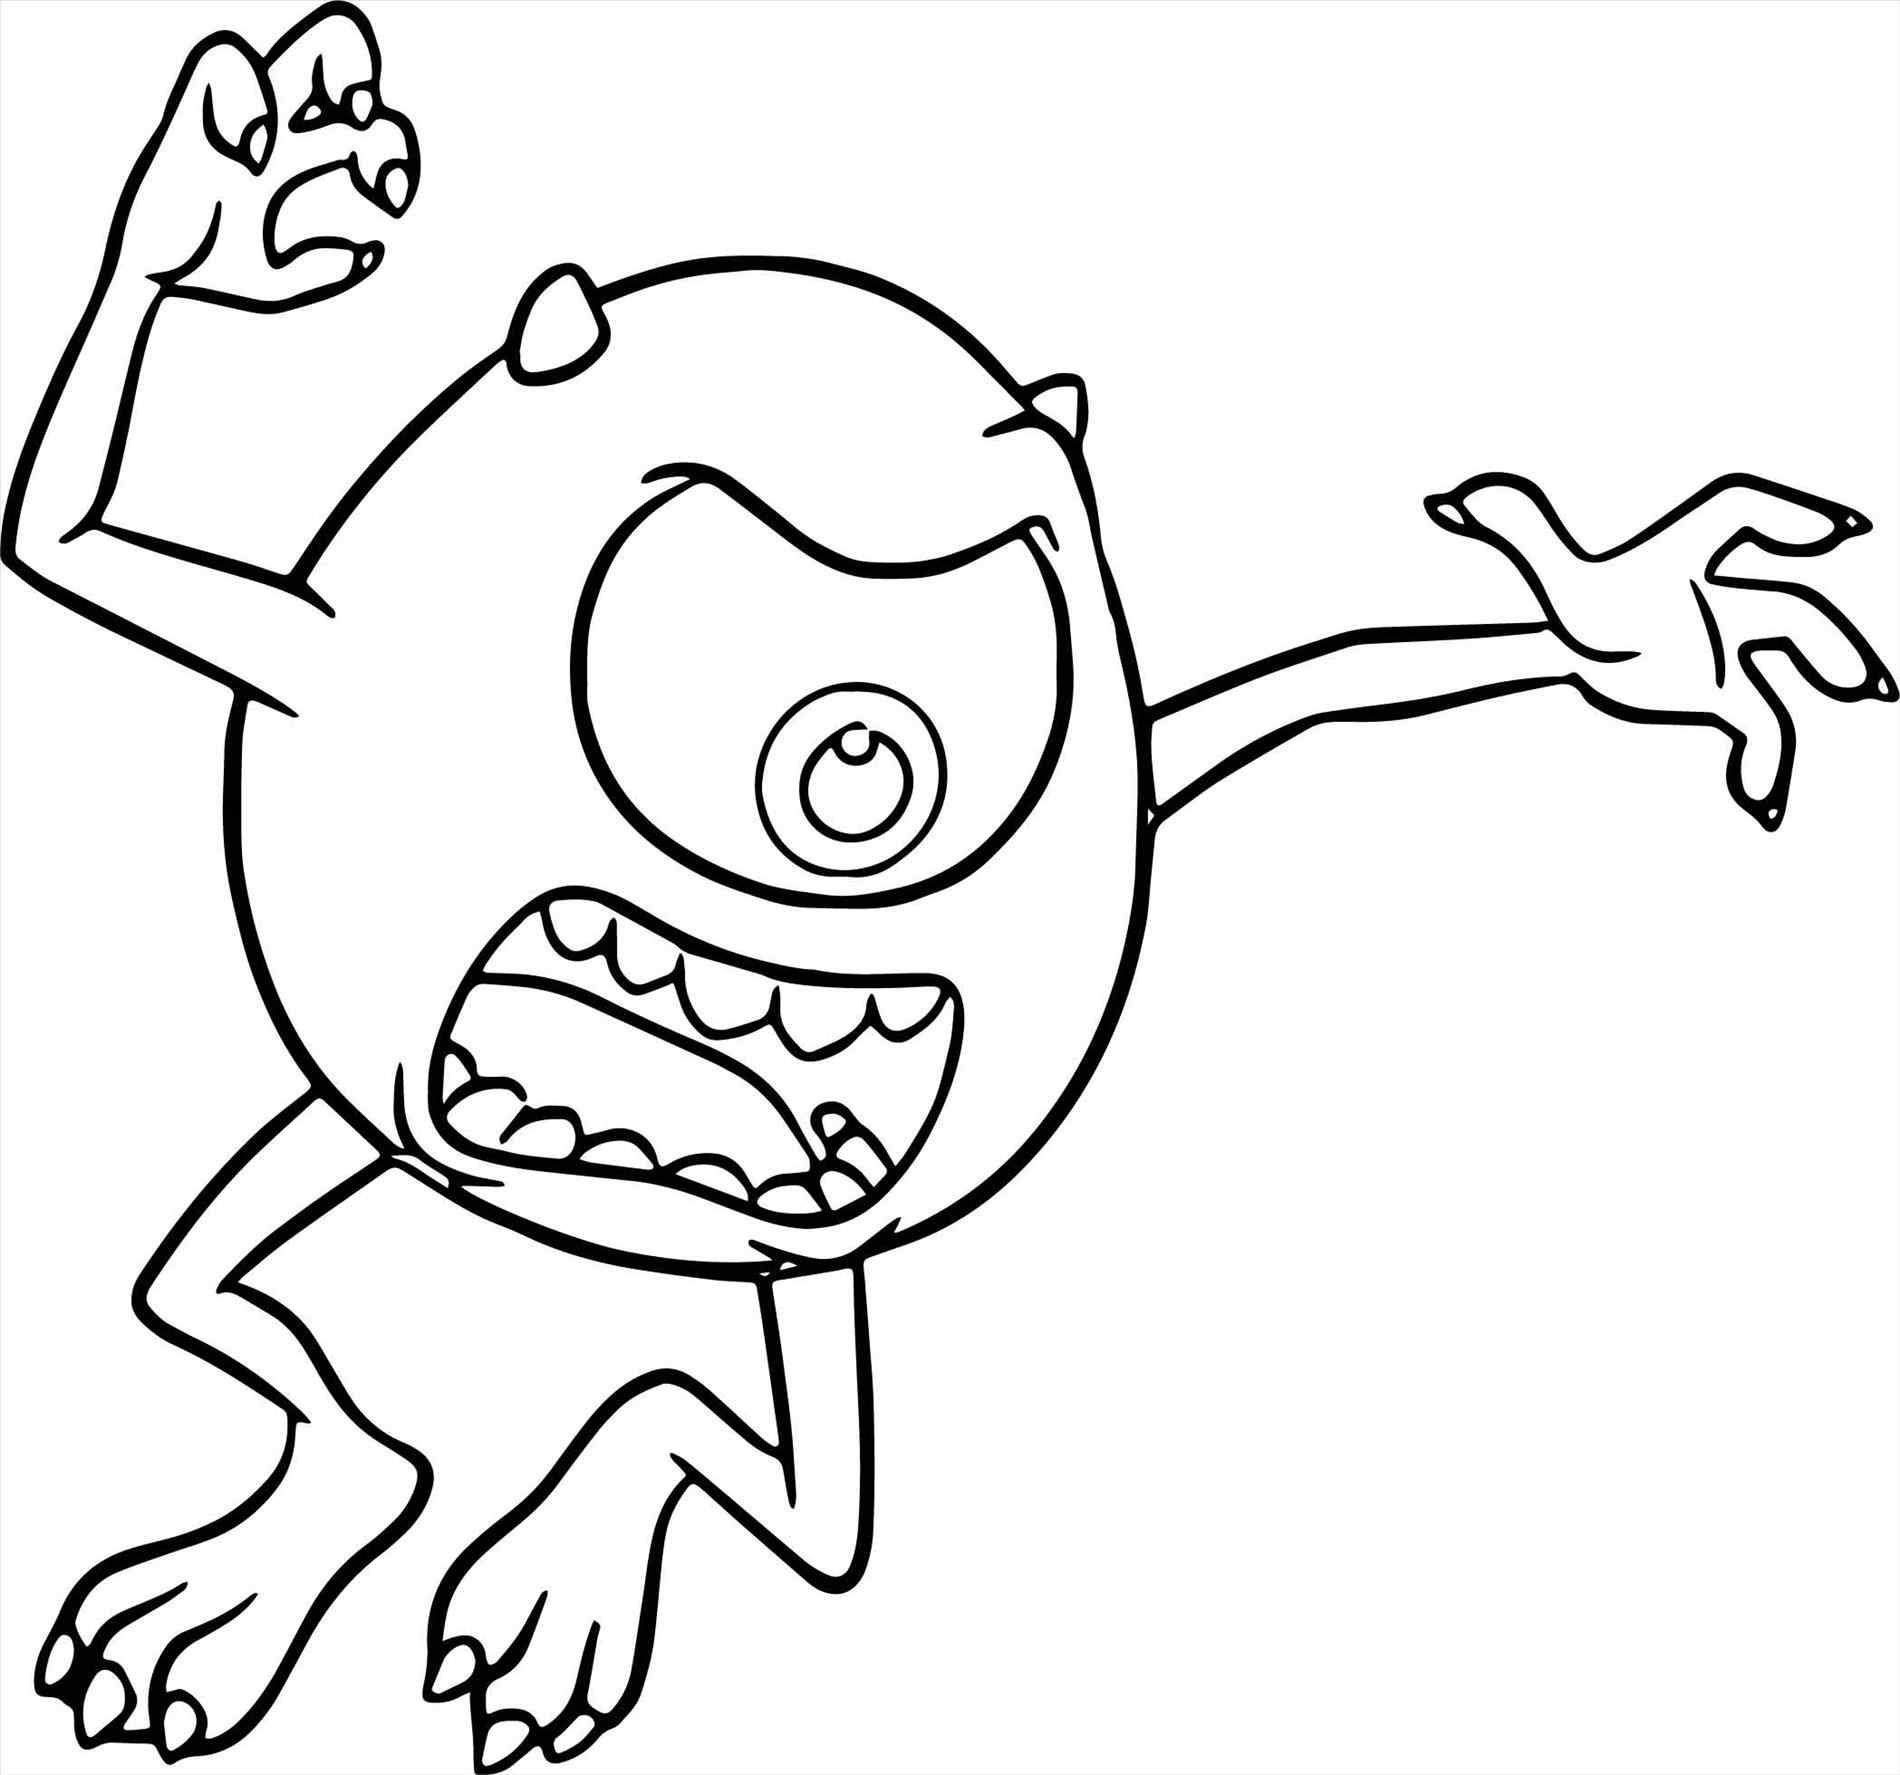 Monsters Inc Characters Coloring Pages at GetColorings.com ...